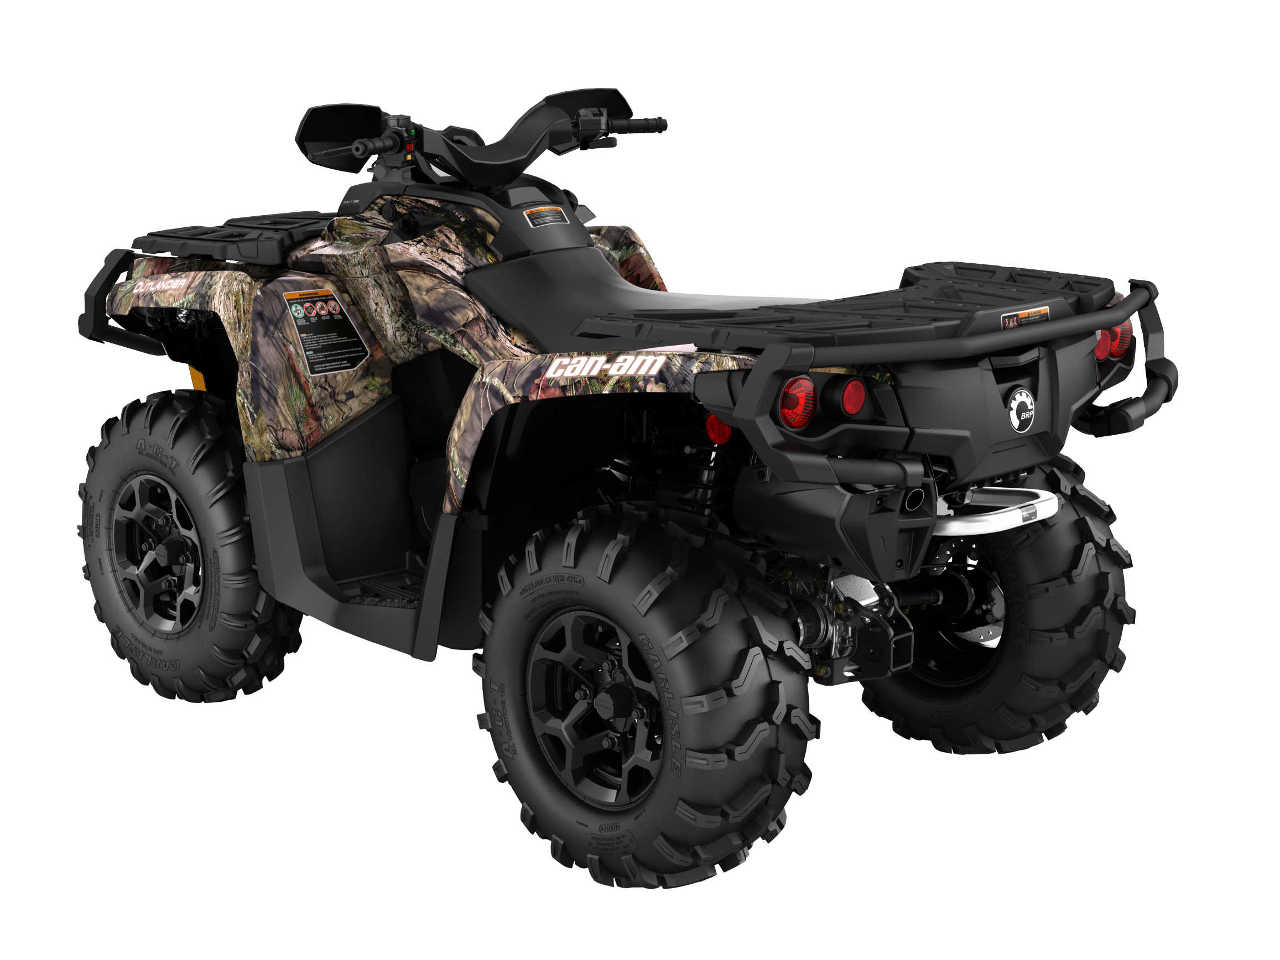 2016 Can Am Outlander Xt 850 Camo Rear